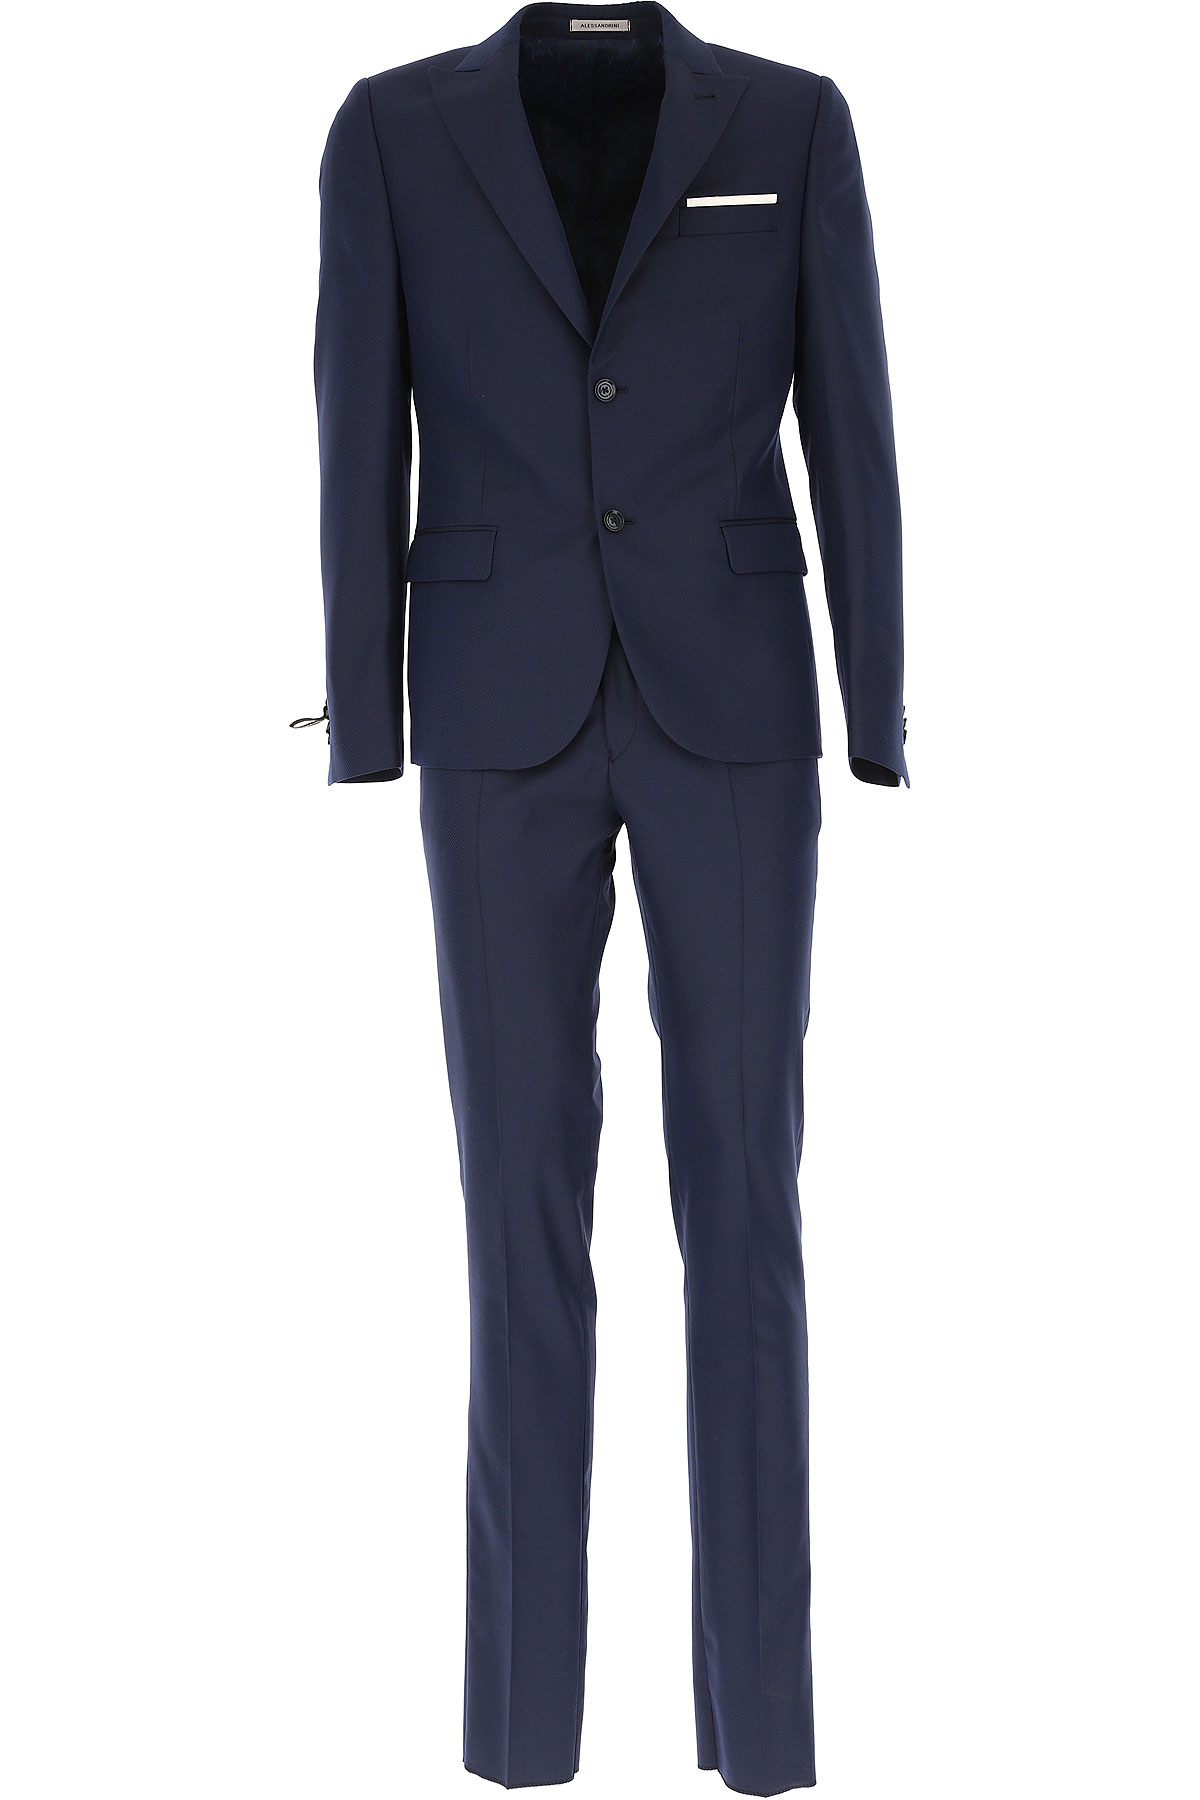 Image of Daniele Alessandrini Men's Suit On Sale, Dark Blue, polyester, 2017, L XL